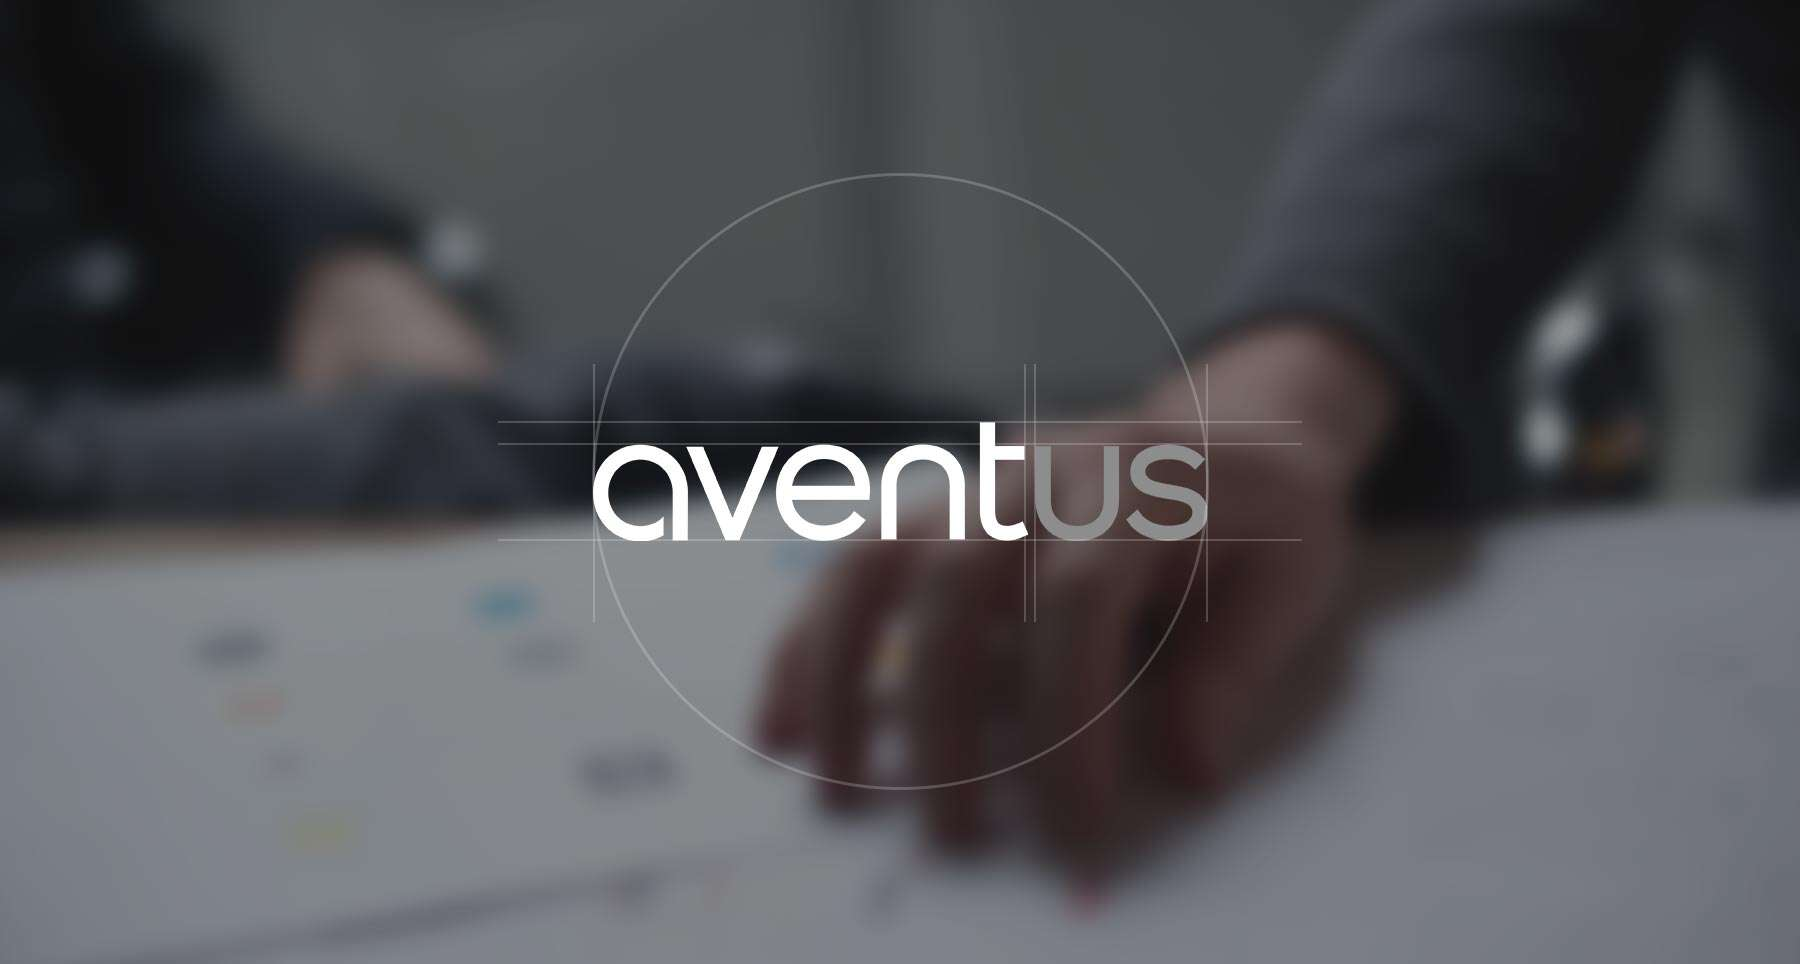 Aventus rebrands with new website, logos and locations